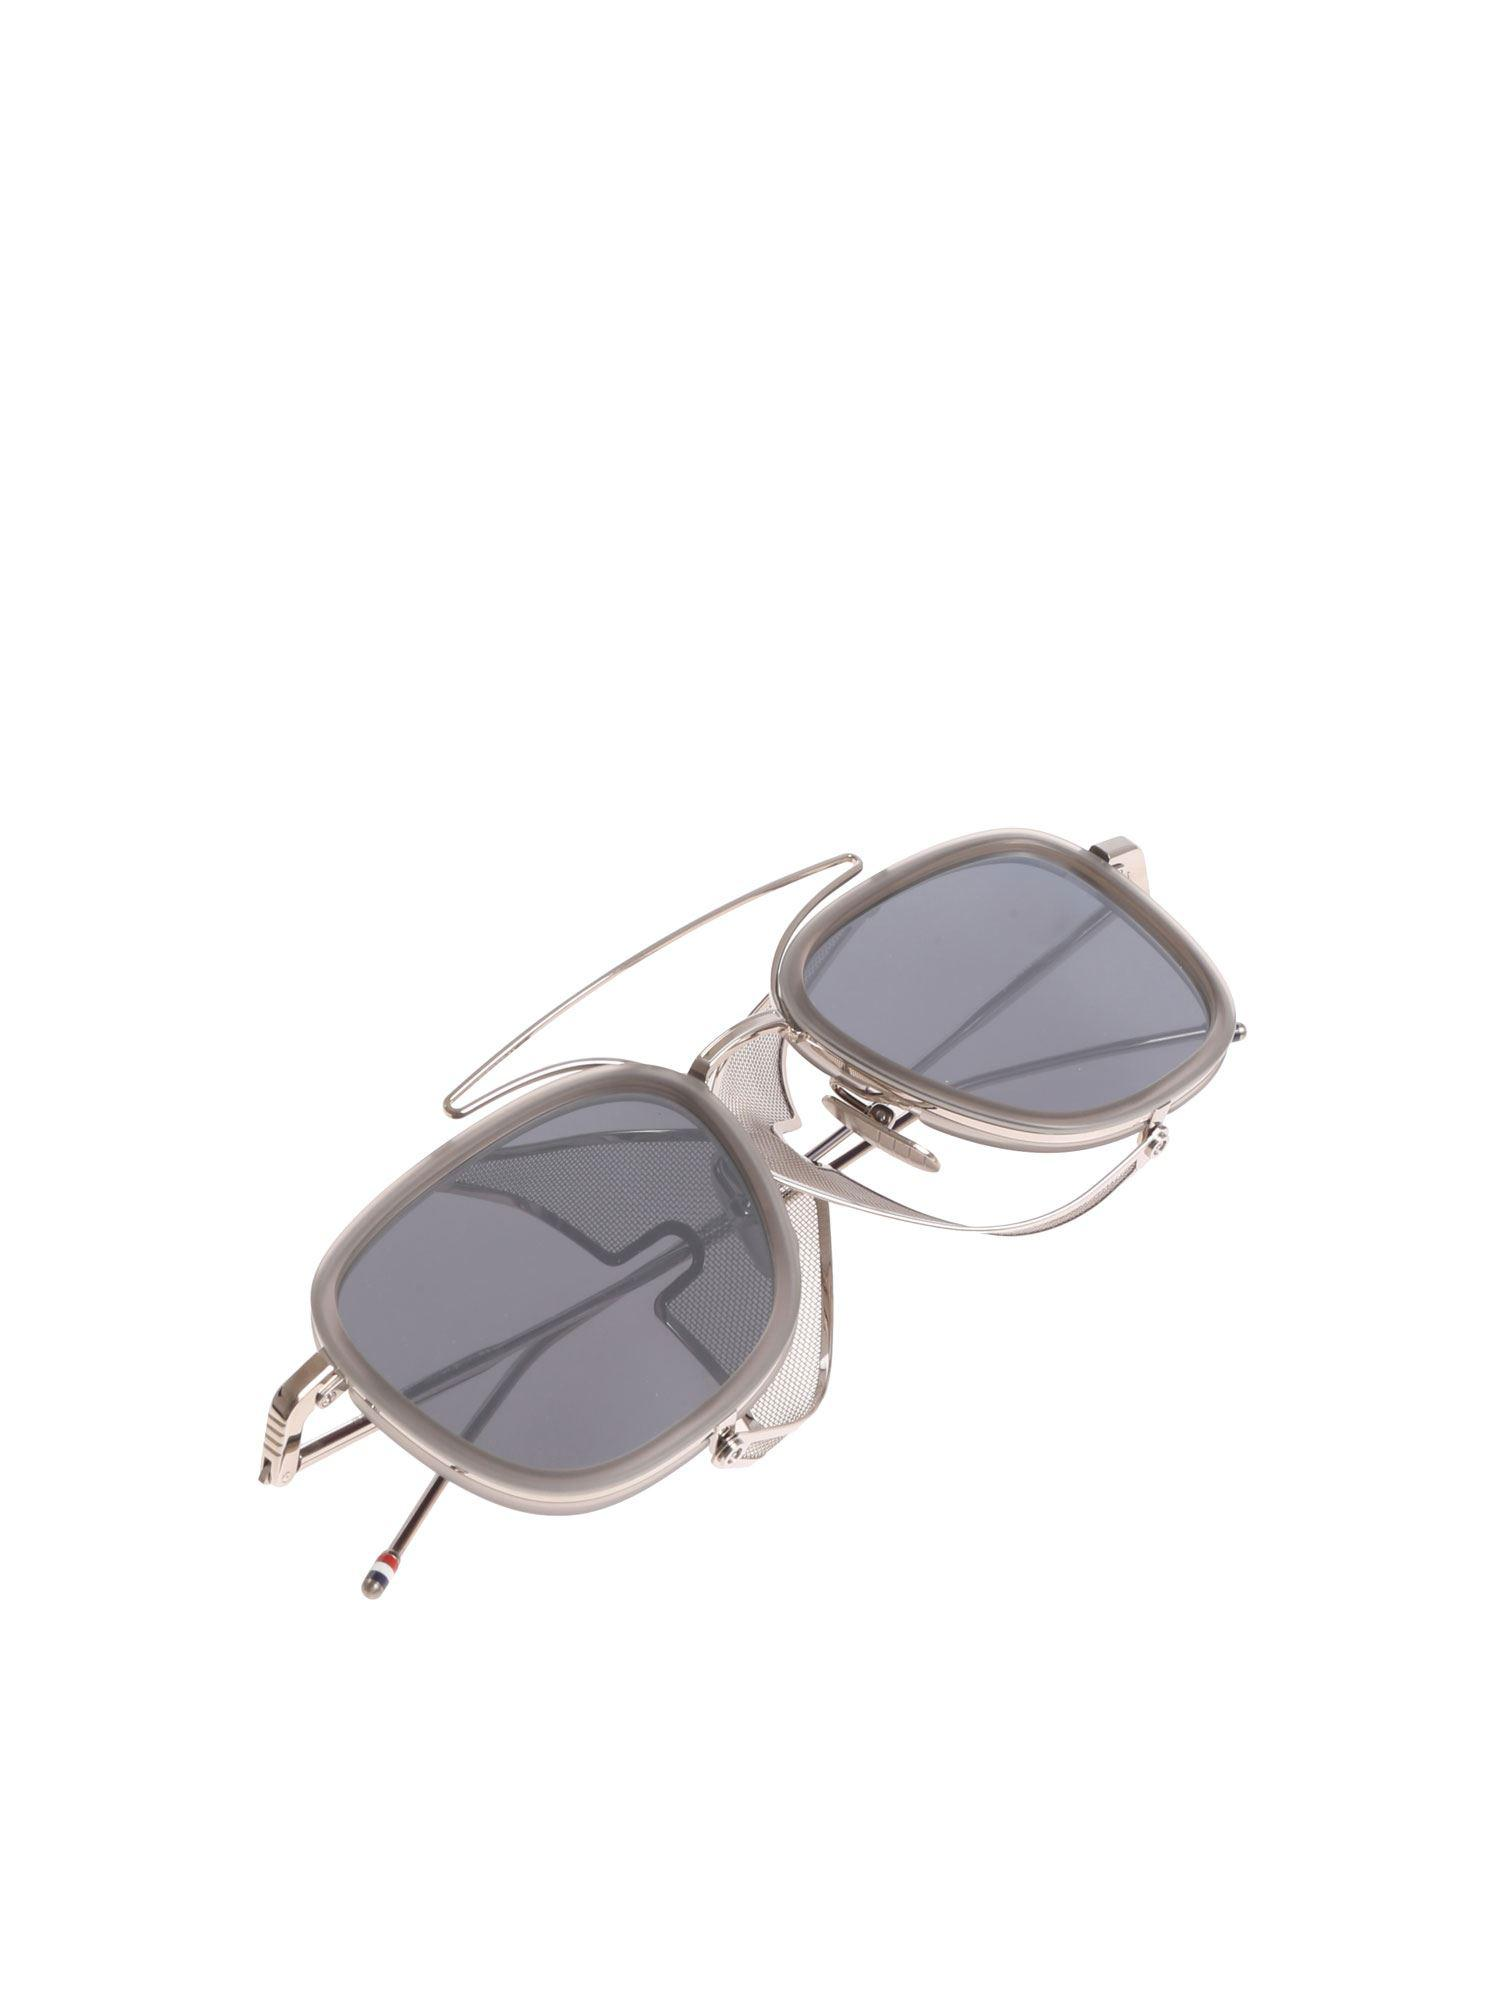 323cd3facdb Thom Browne - Gray Grey Sunglasses With Side Shields for Men - Lyst. View  fullscreen